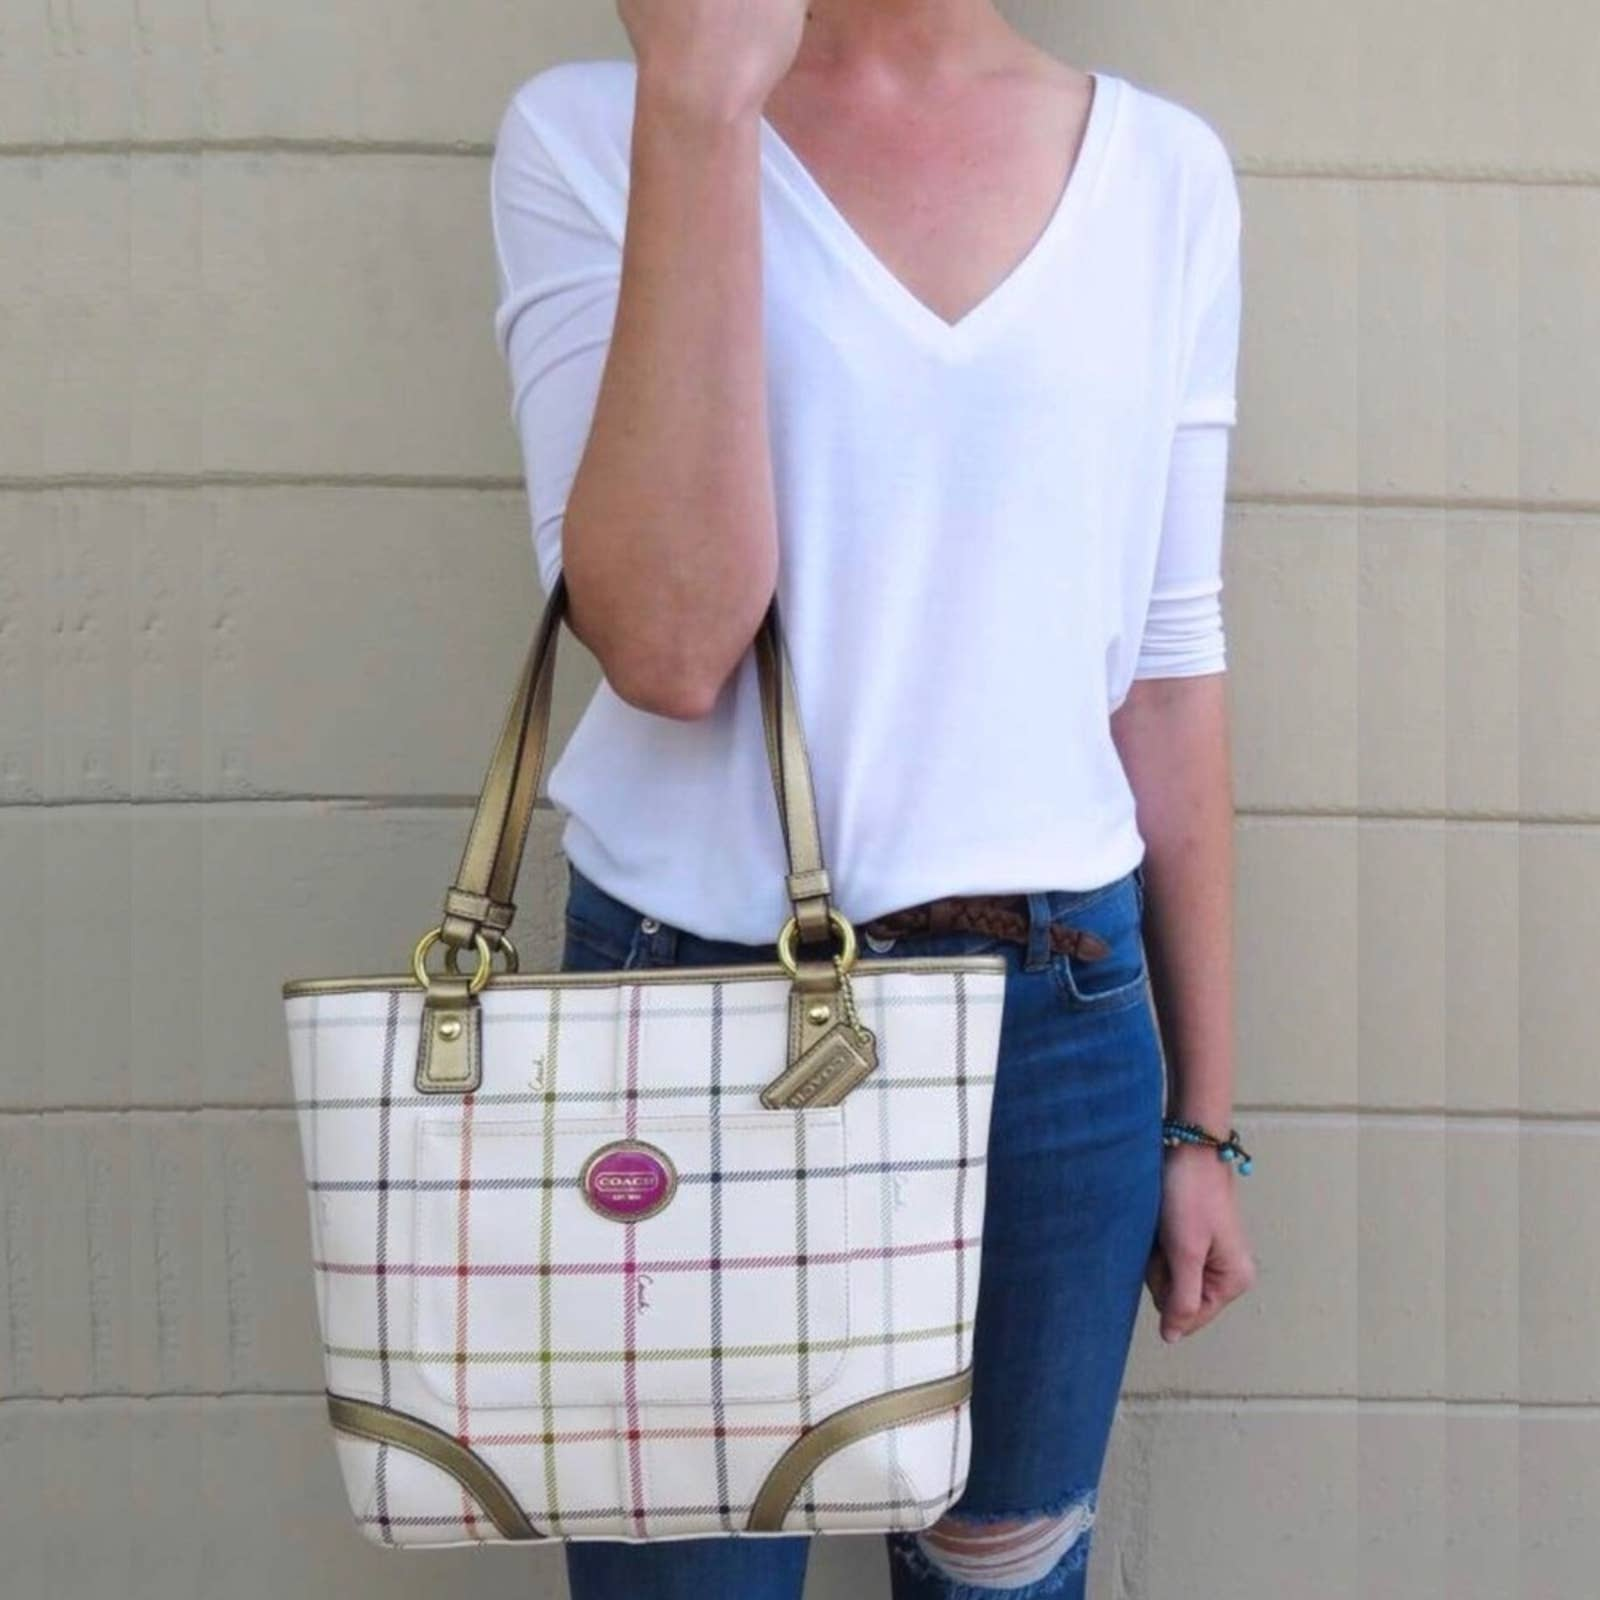 Product Image 1 - COACH HandbagWhite with Multicolor Plaid